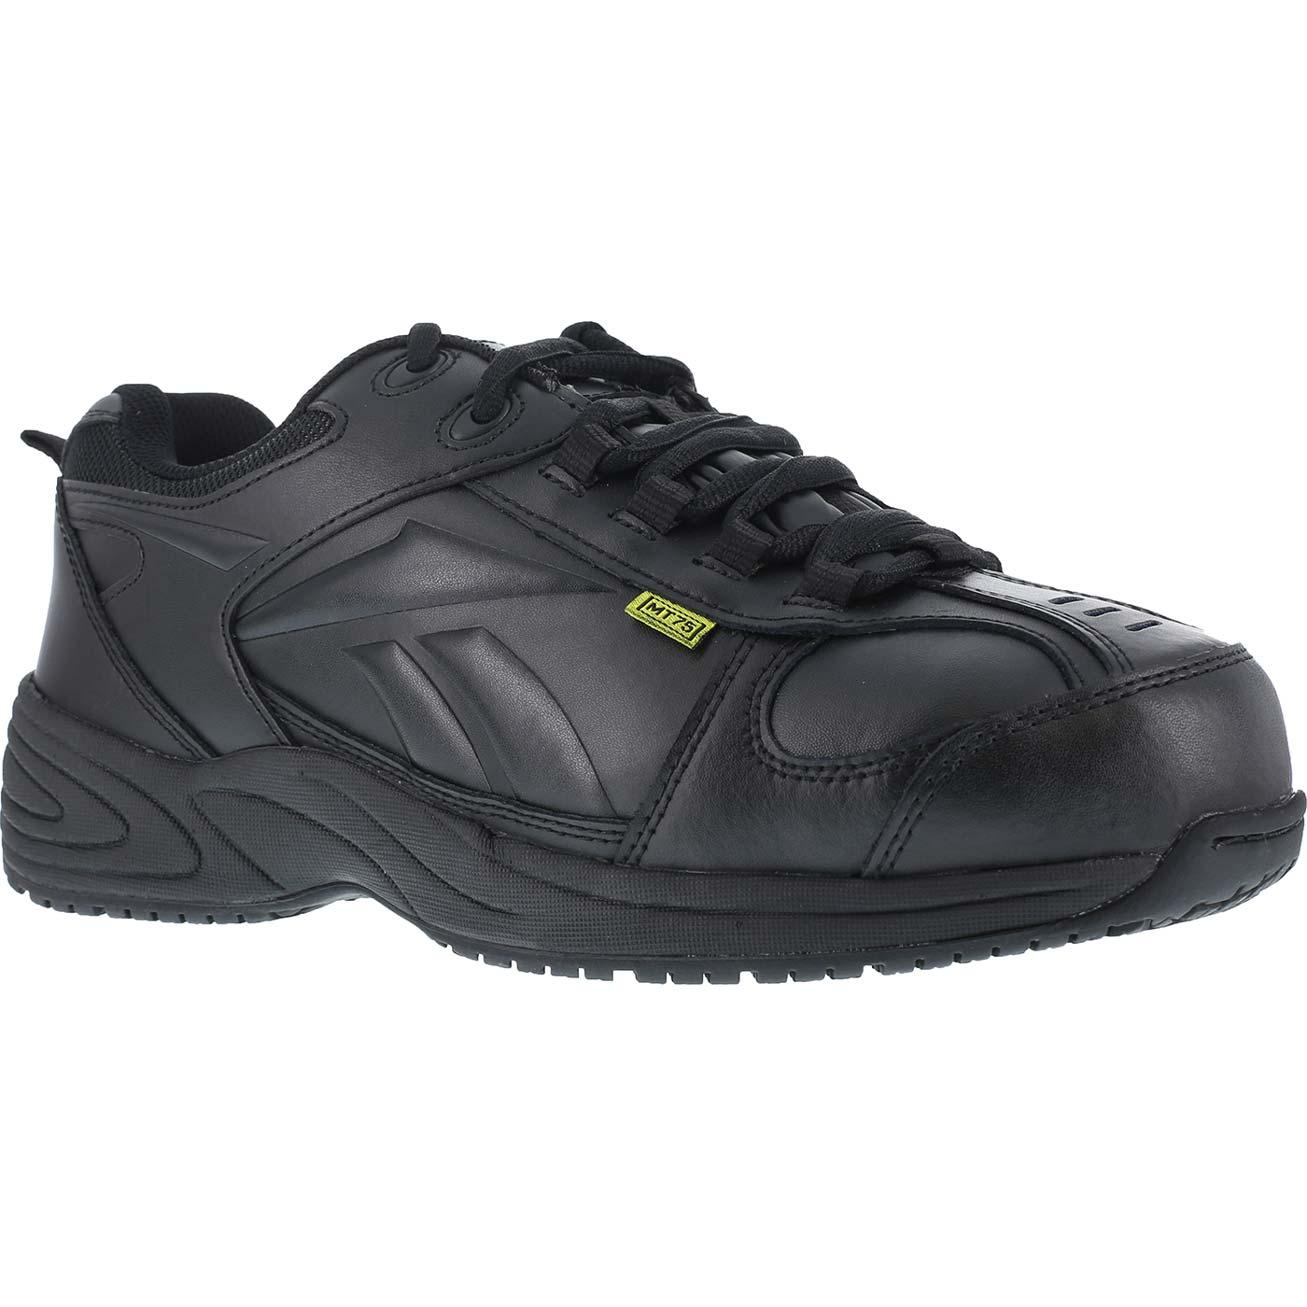 Dickies Composite Toe Shoes Wide